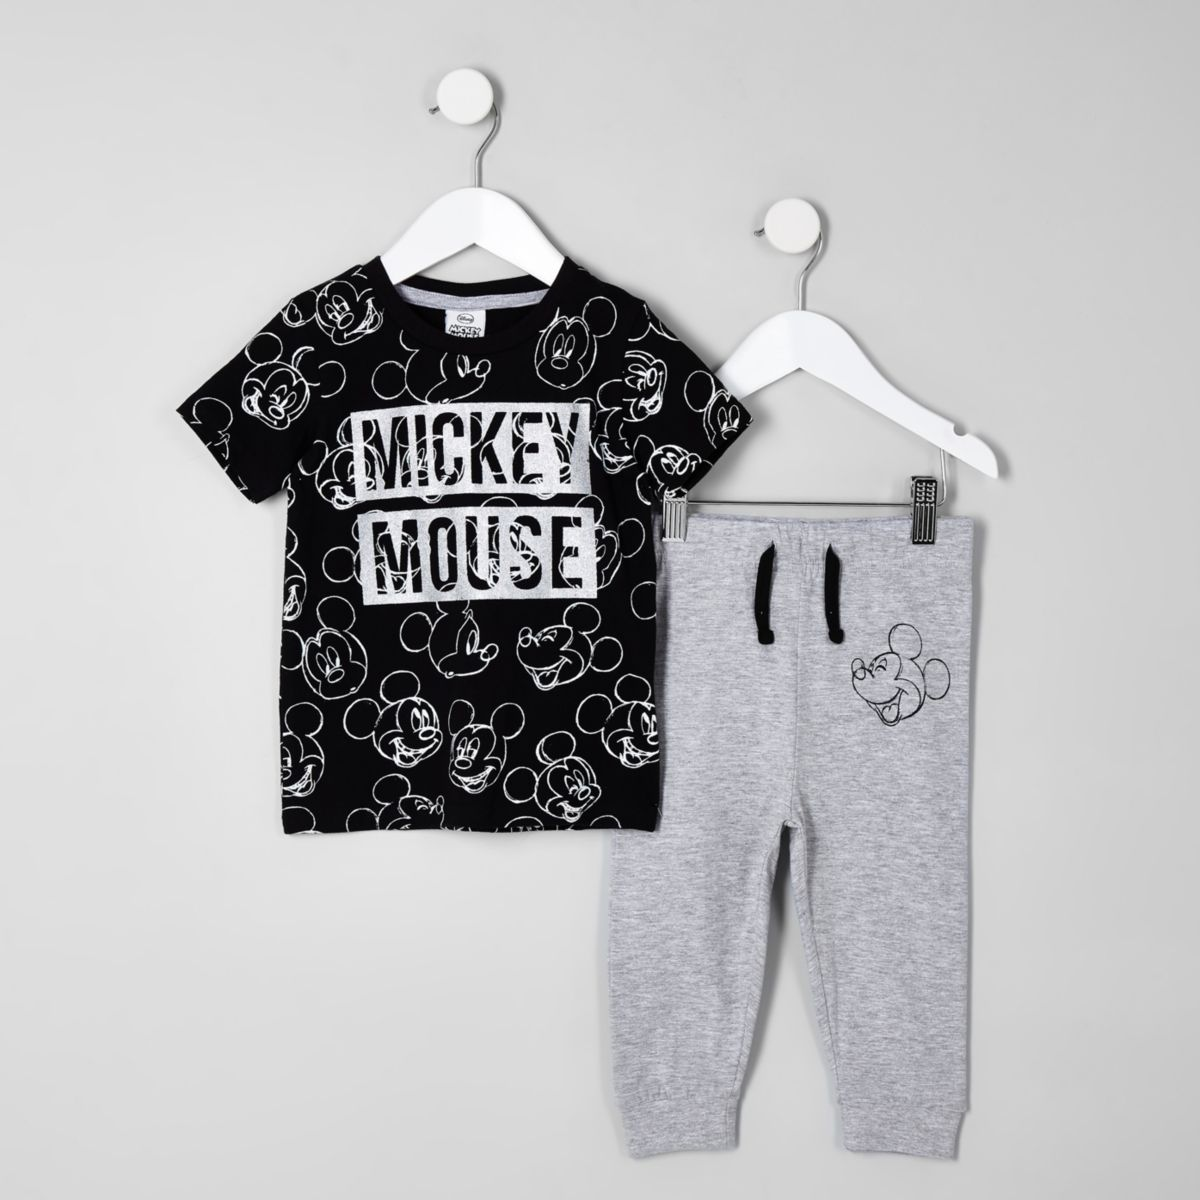 Mini boys black Mickey Mouse pajama outfit